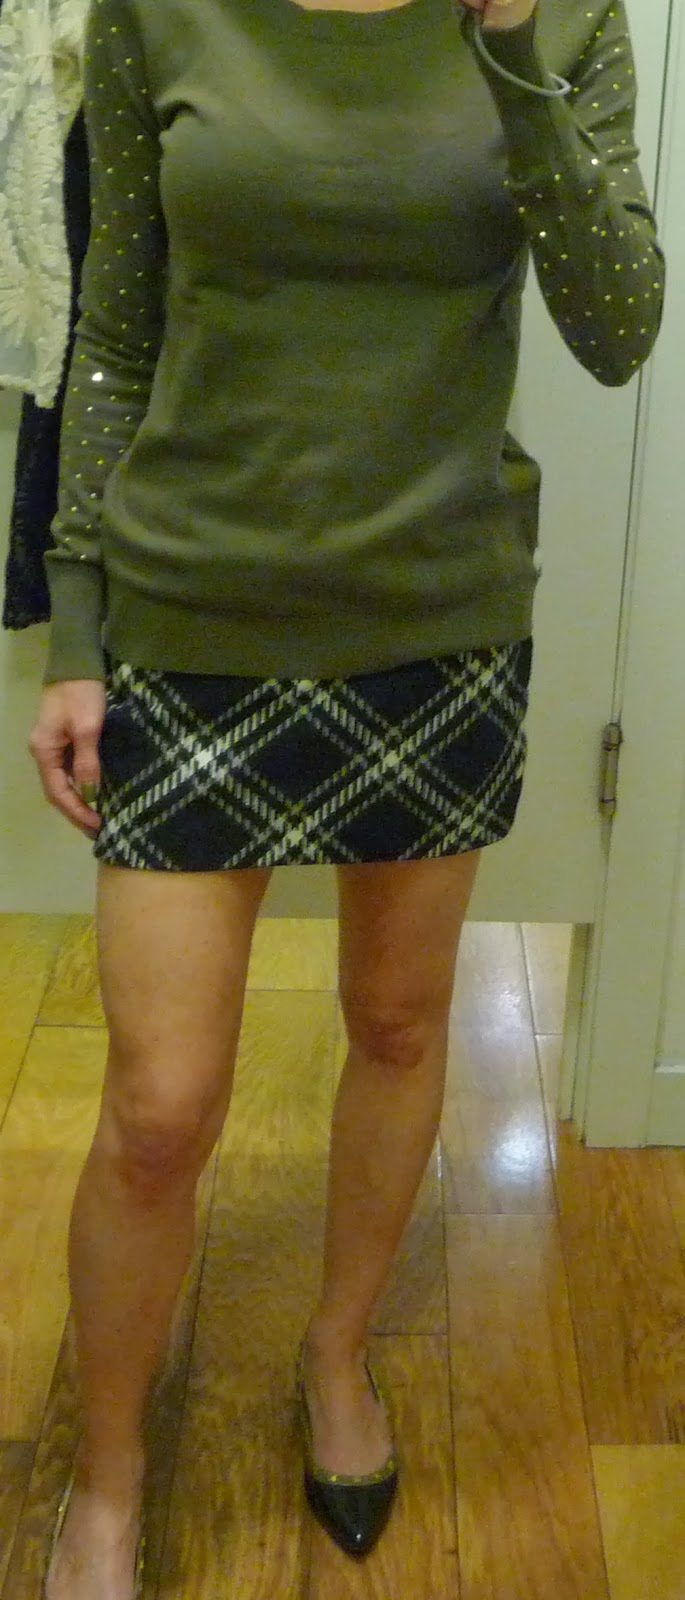 Express tartan plaid mini skirt, zipper, black, olive rhinestud crewneck sweater